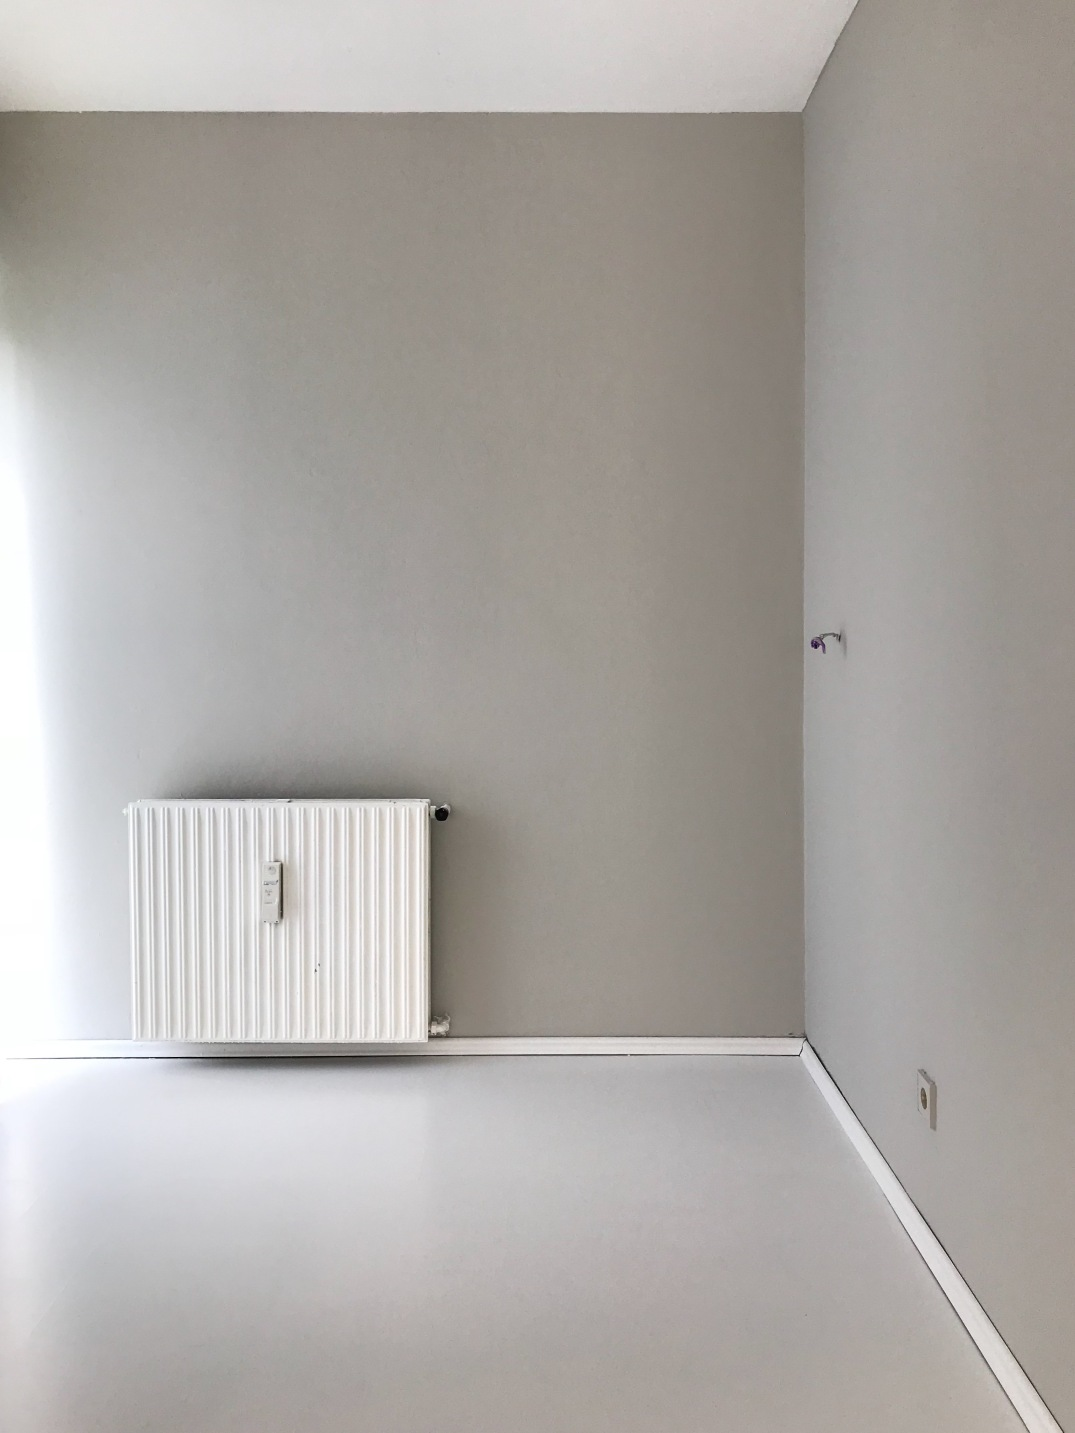 AFTER the painting job - walls 'Cornforth White' and floors 'Wevet' by Farrow and Ball